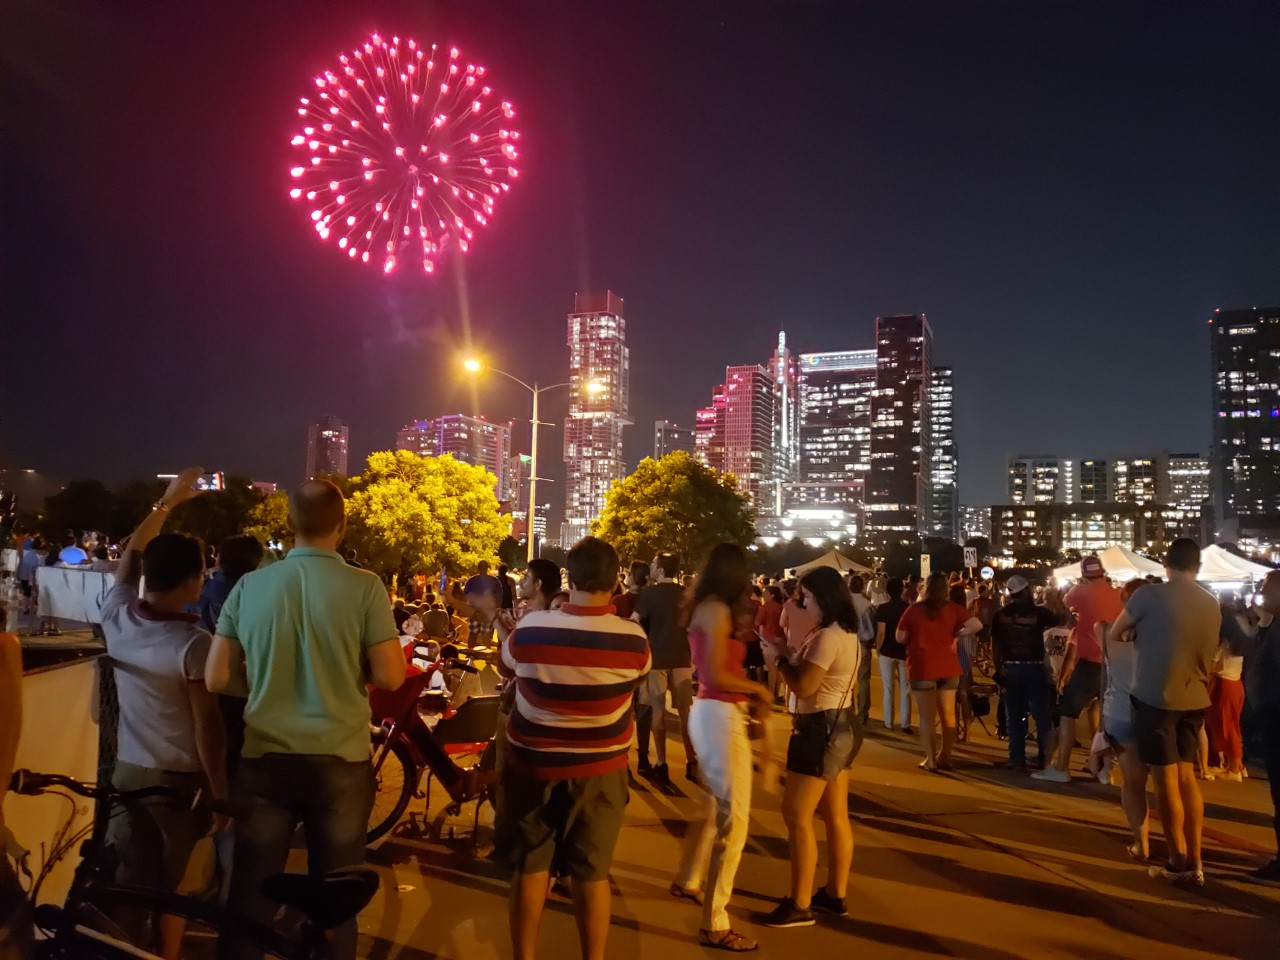 Austin 4th of July fireworks